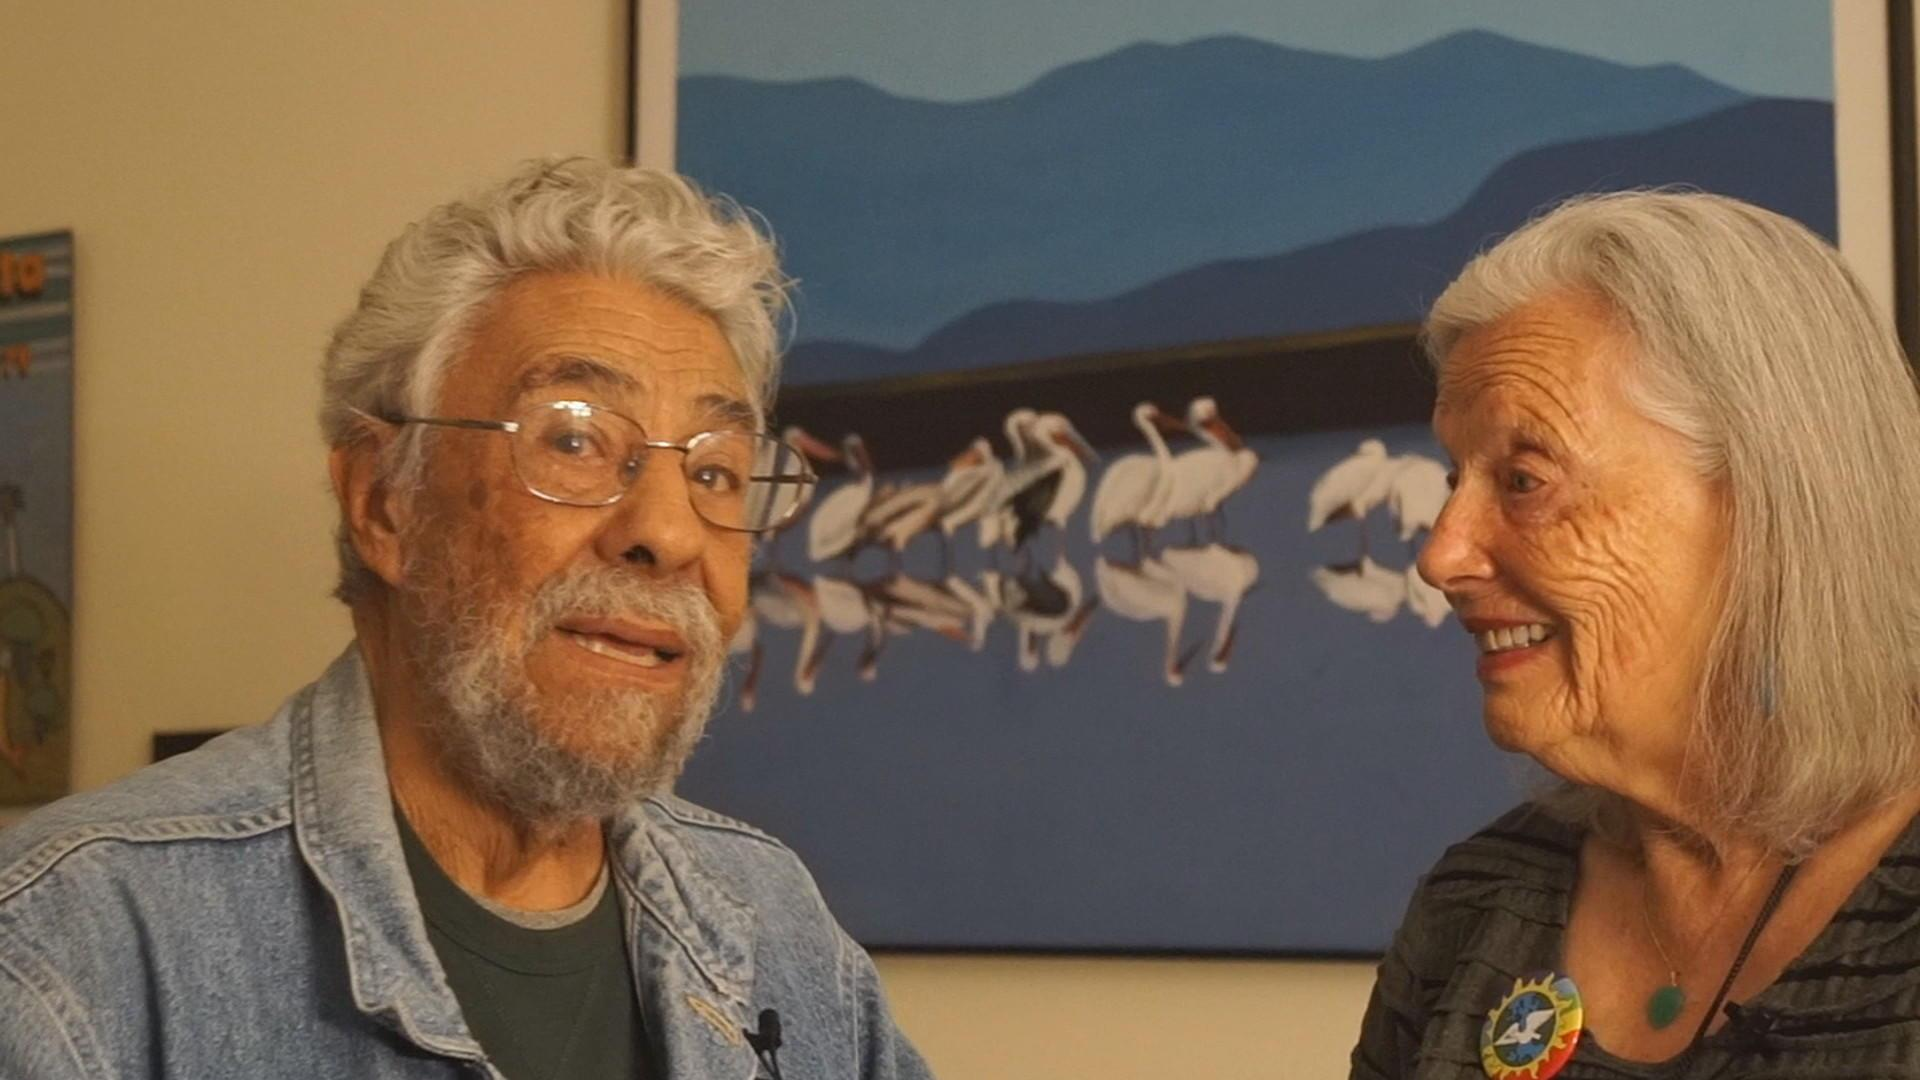 Nina Serrano interviewing Rafael Jesús González about the Universal Earth Justice Peace flag and button